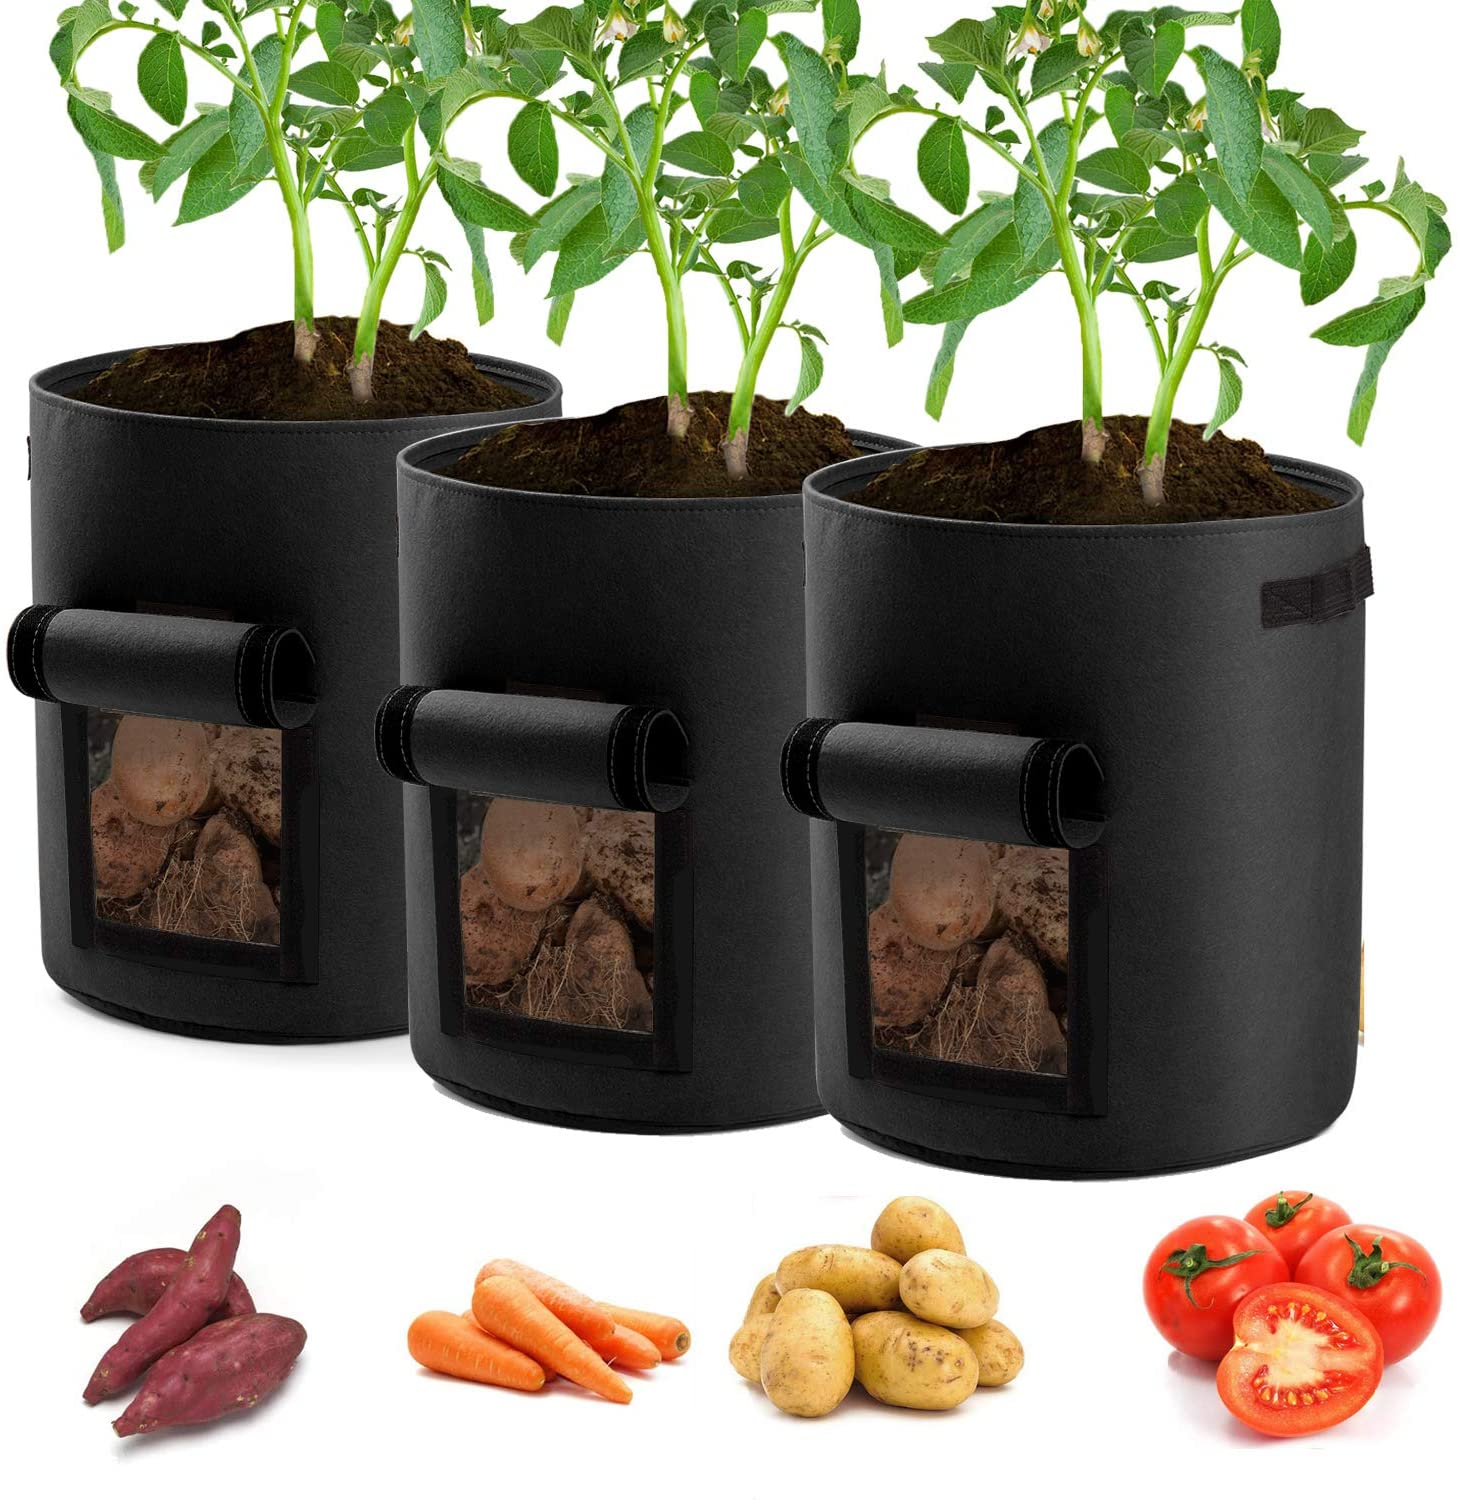 Garden4Ever Potato Planter Bags 3-Pack 7 Gallons Grow Bags Aeration Tomato Plant Pots with Flap and Handles (Black)